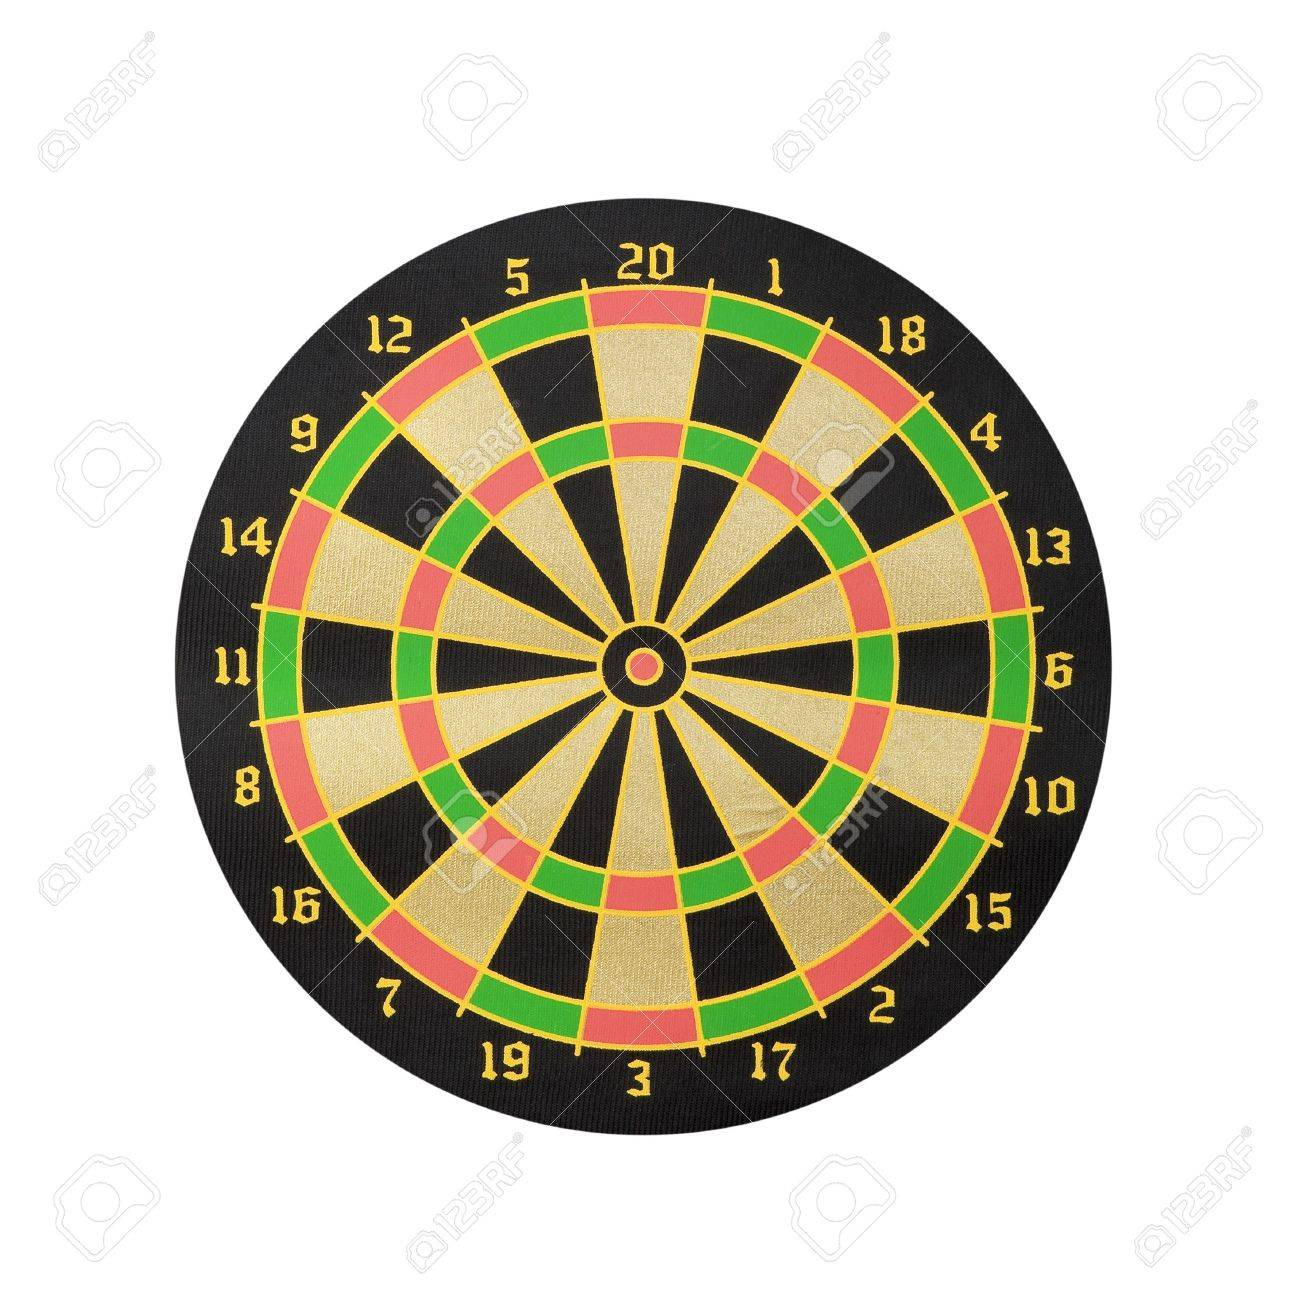 Dart board isolated on white background - front view Stock Photo - 5269262